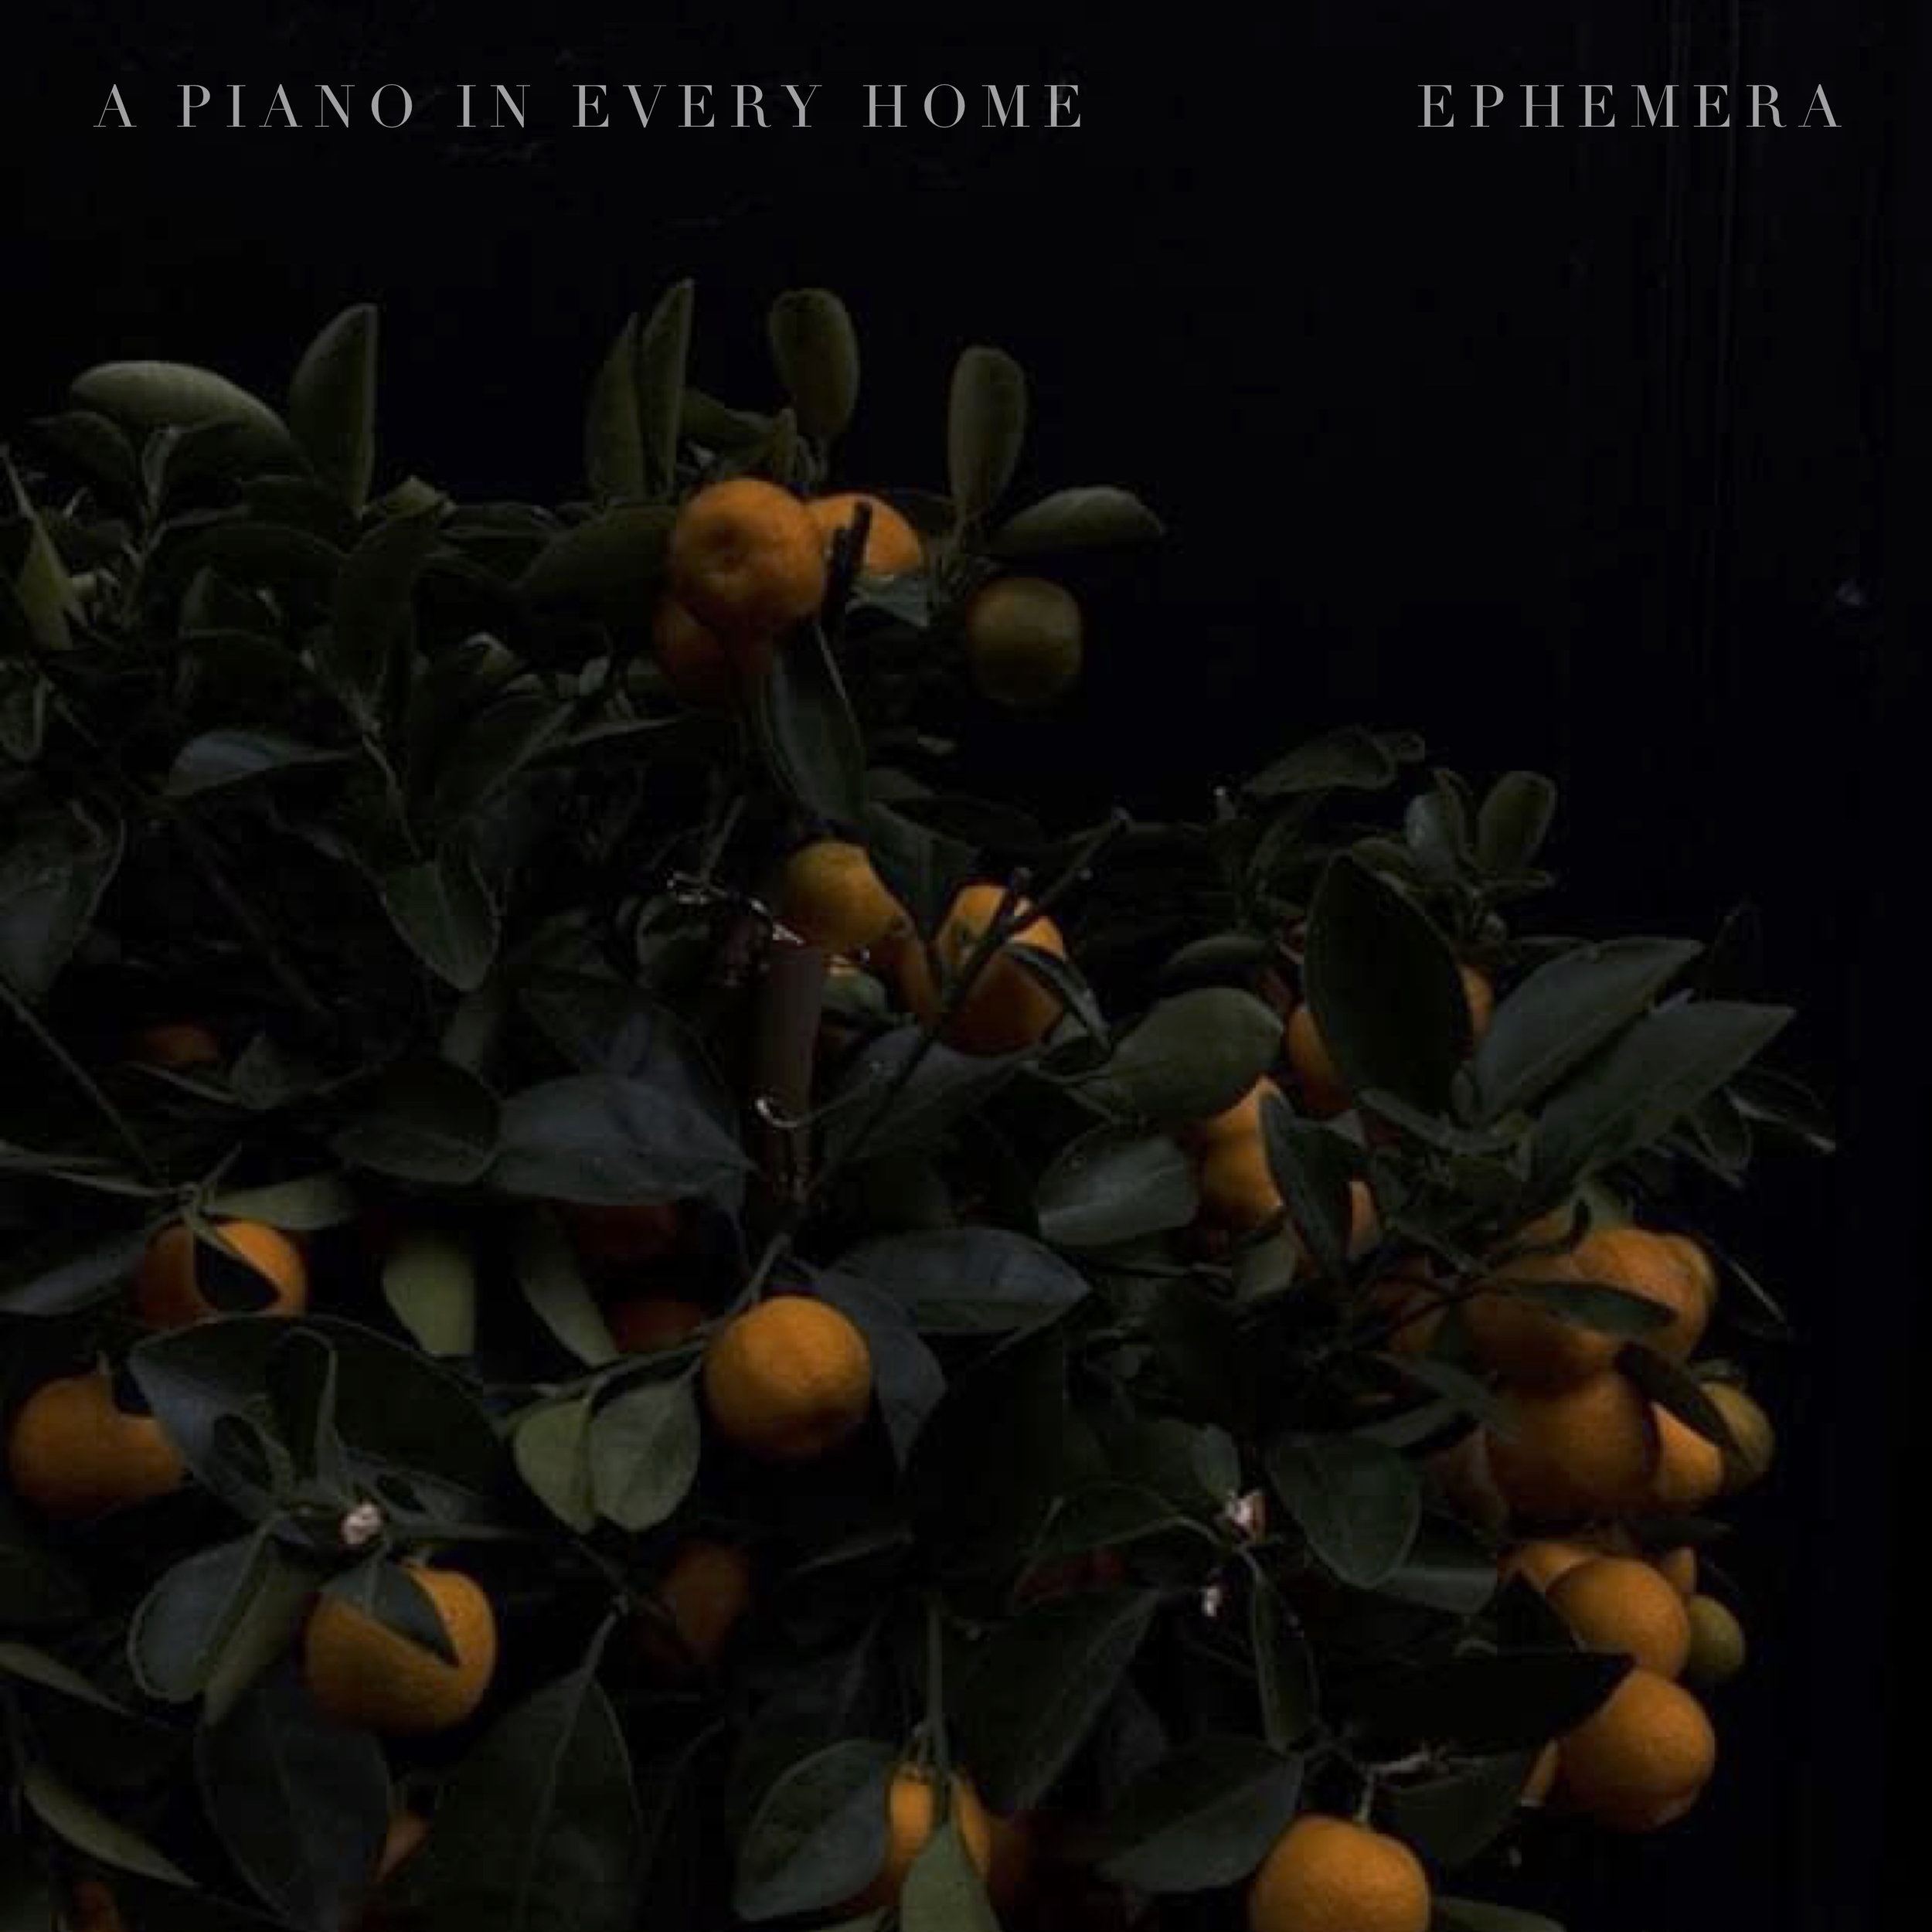 Ephemera Album Cover 04.06.19.jpg